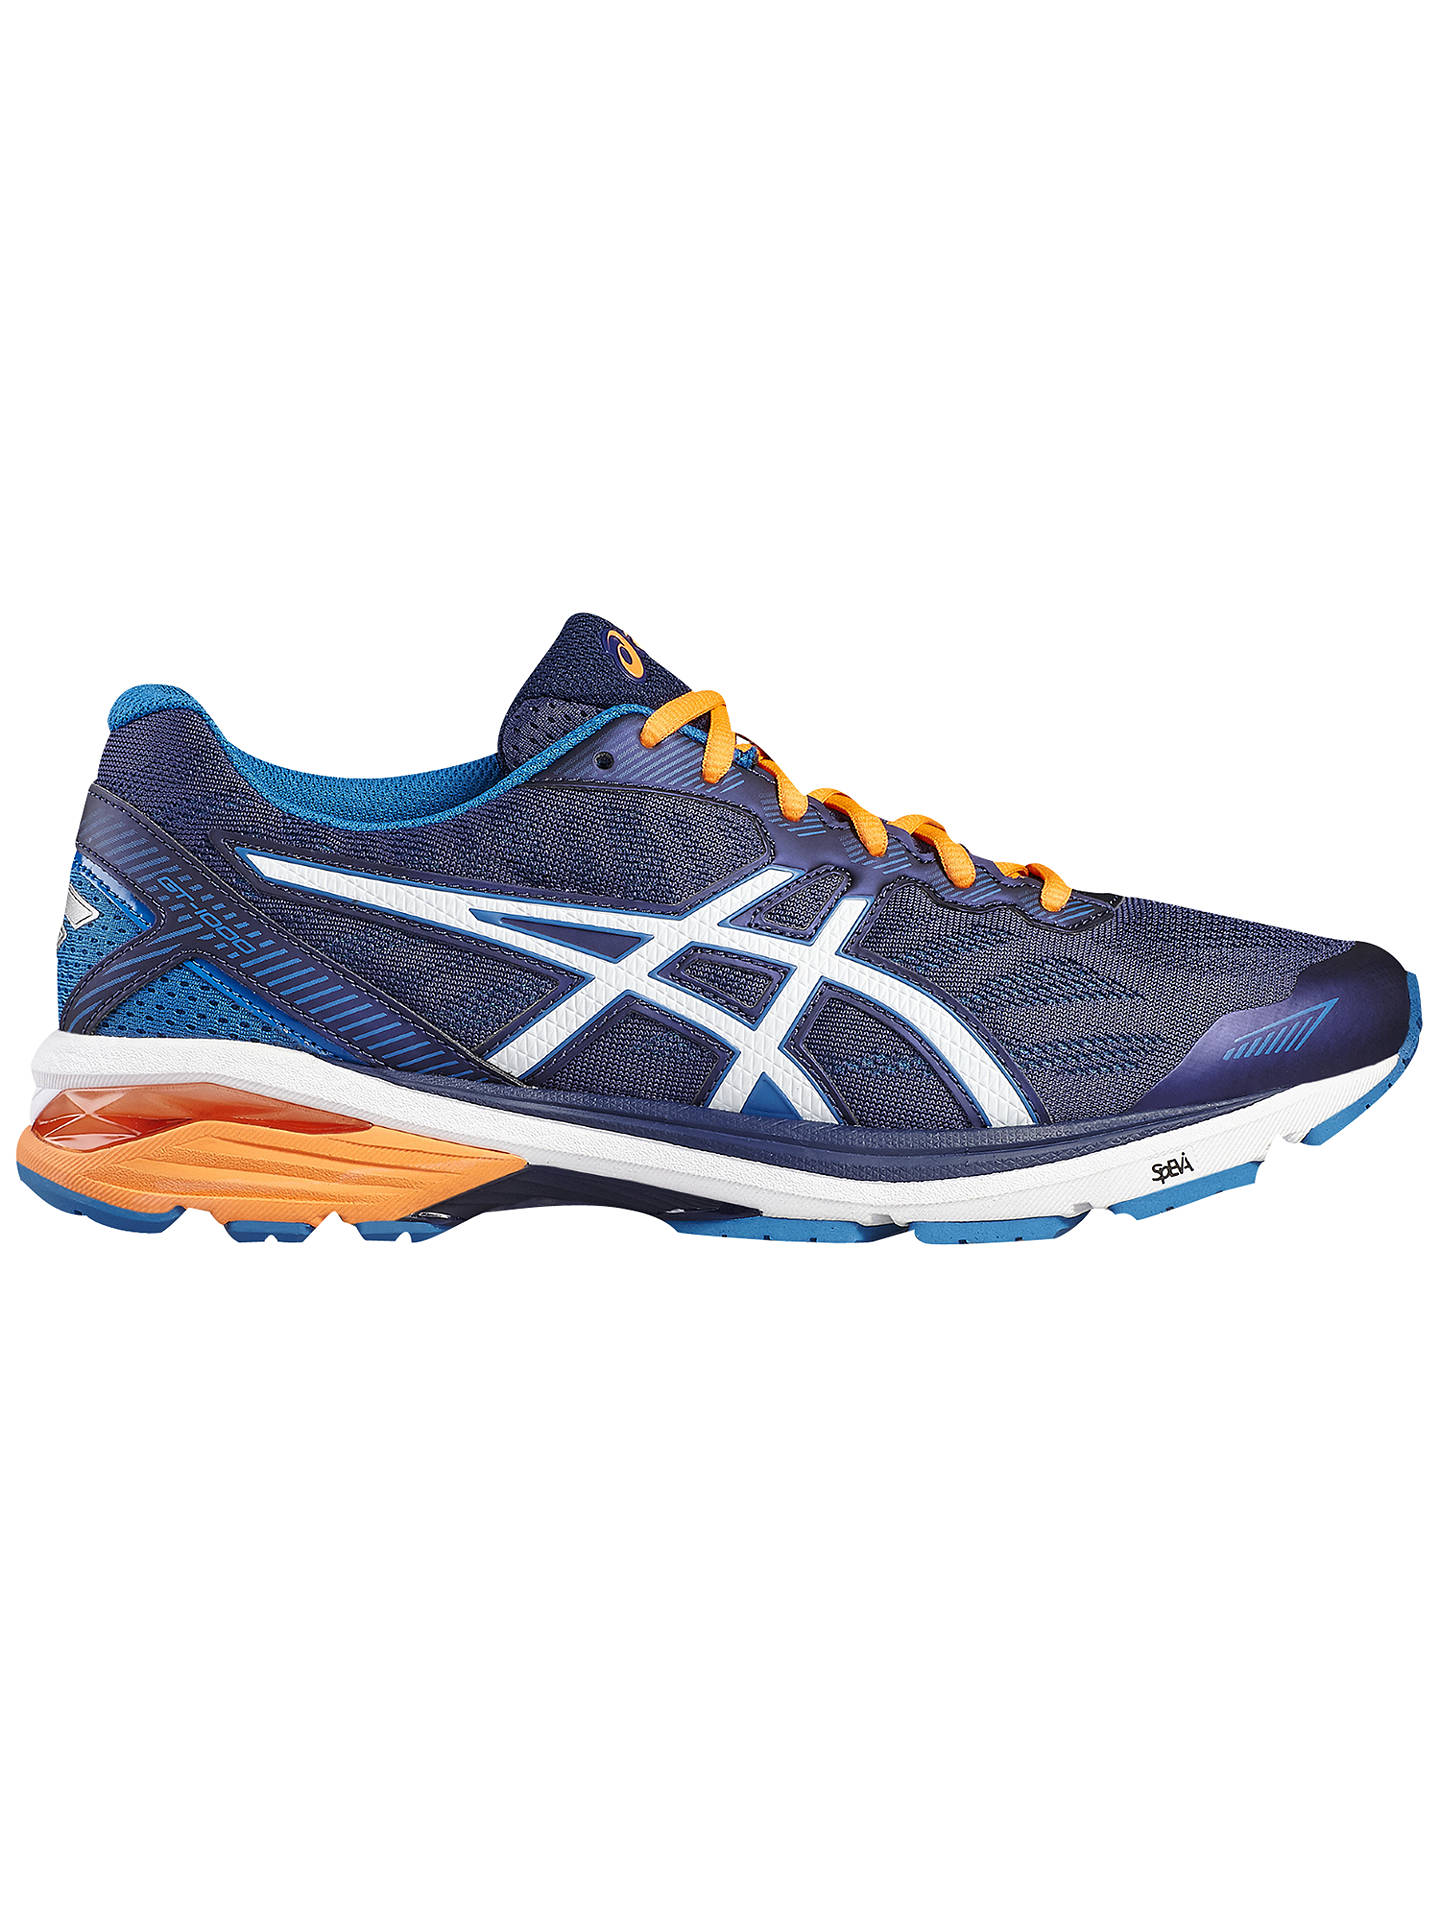 b4a71a7675 Asics GT-1000 5 Men's Running Shoes, Blue/White at John Lewis & Partners